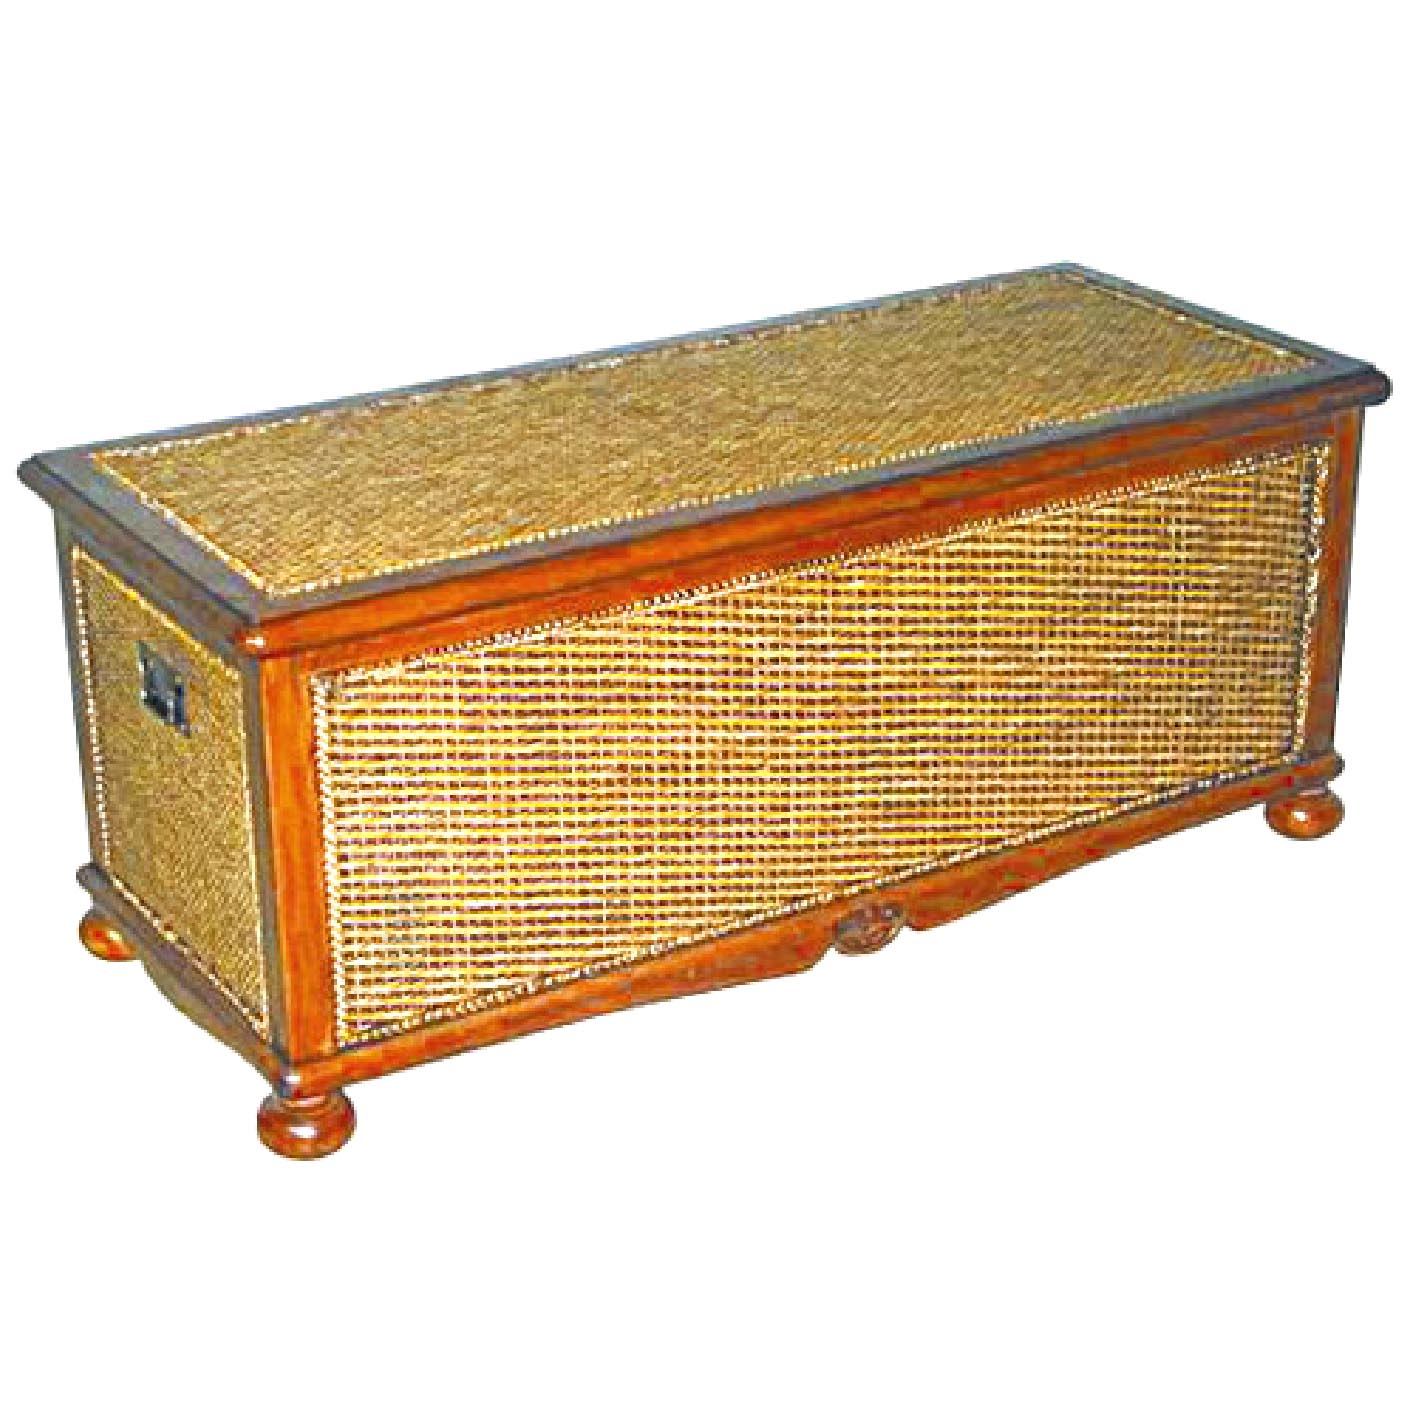 Brand new Cane & Rattan Storage Baskets | Trunks | Toy Boxes | Blanket Box VZ74